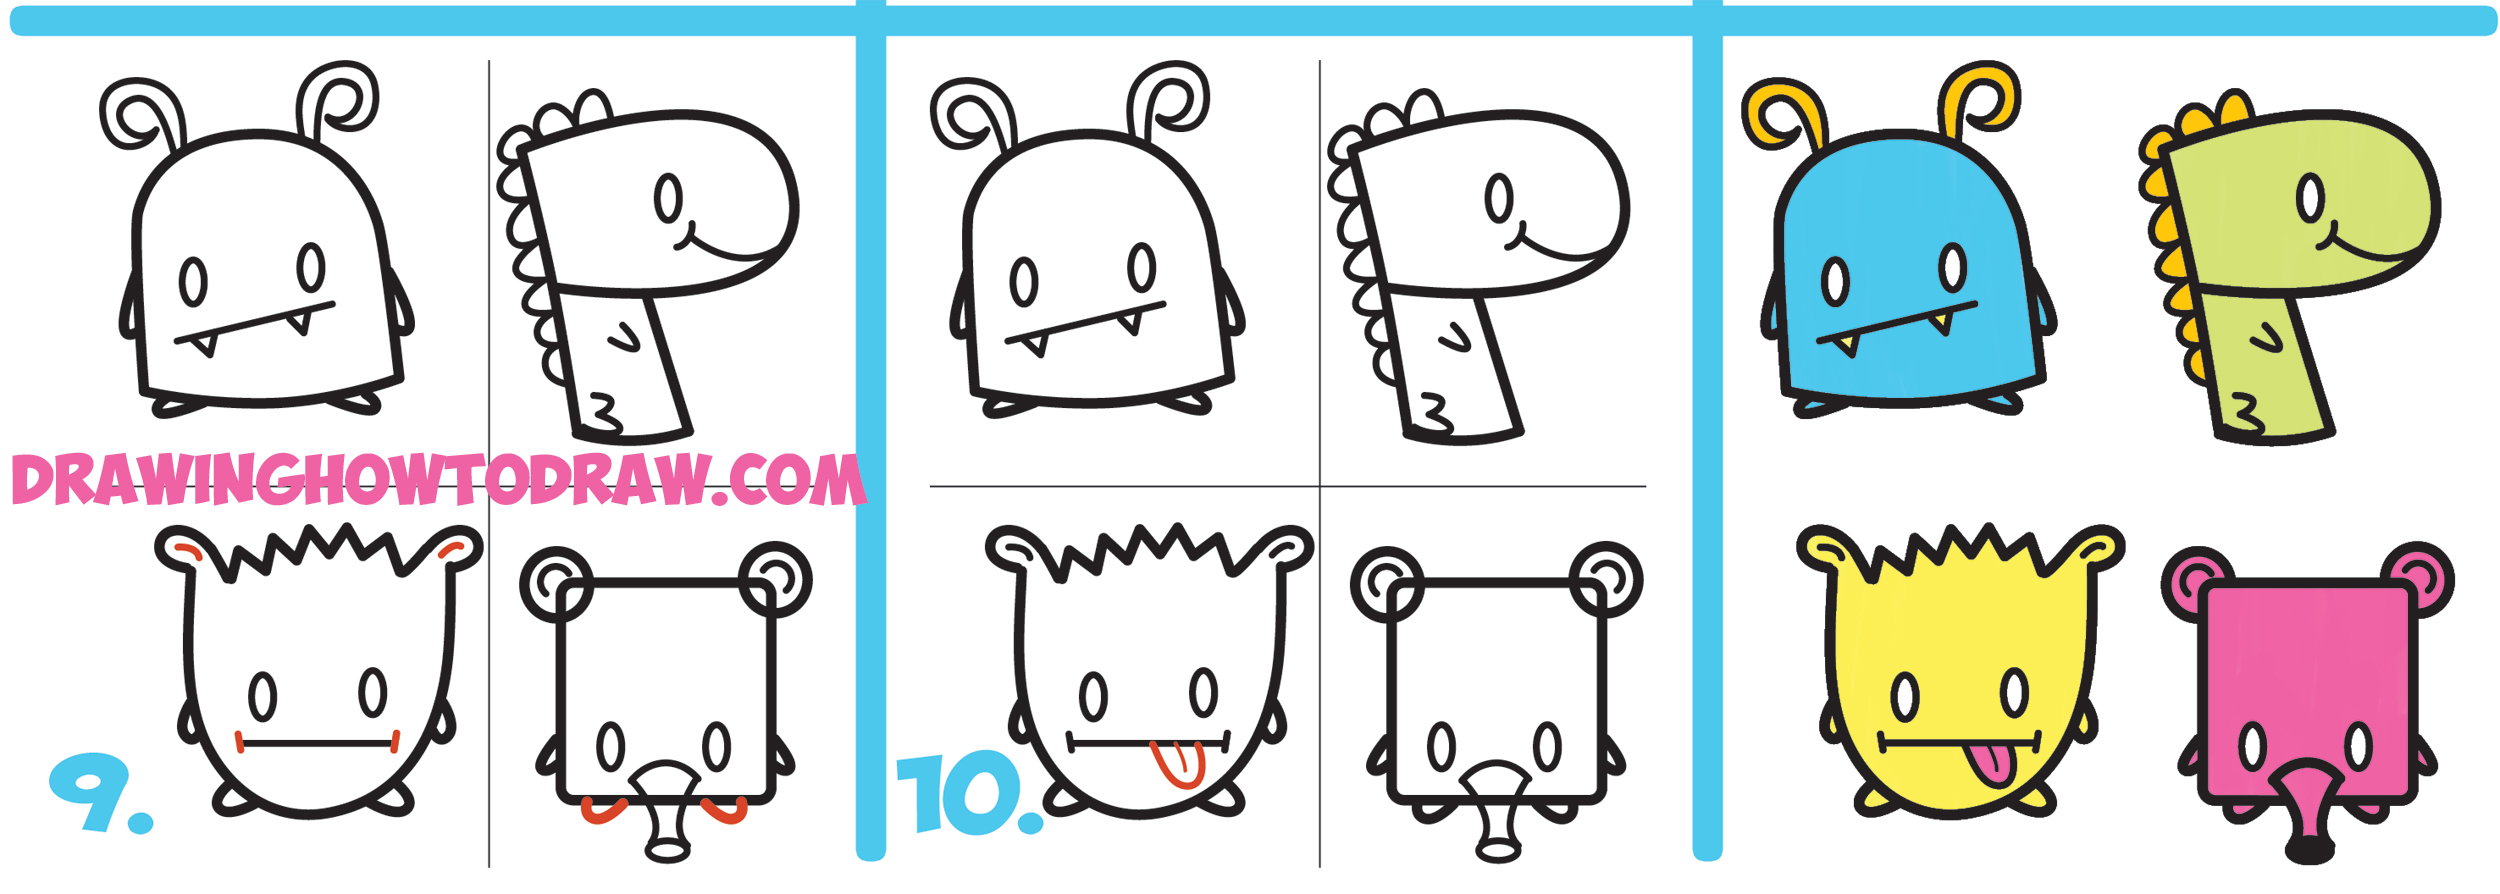 How To Draw Cute Cartoon Monsters From Simple Shapes